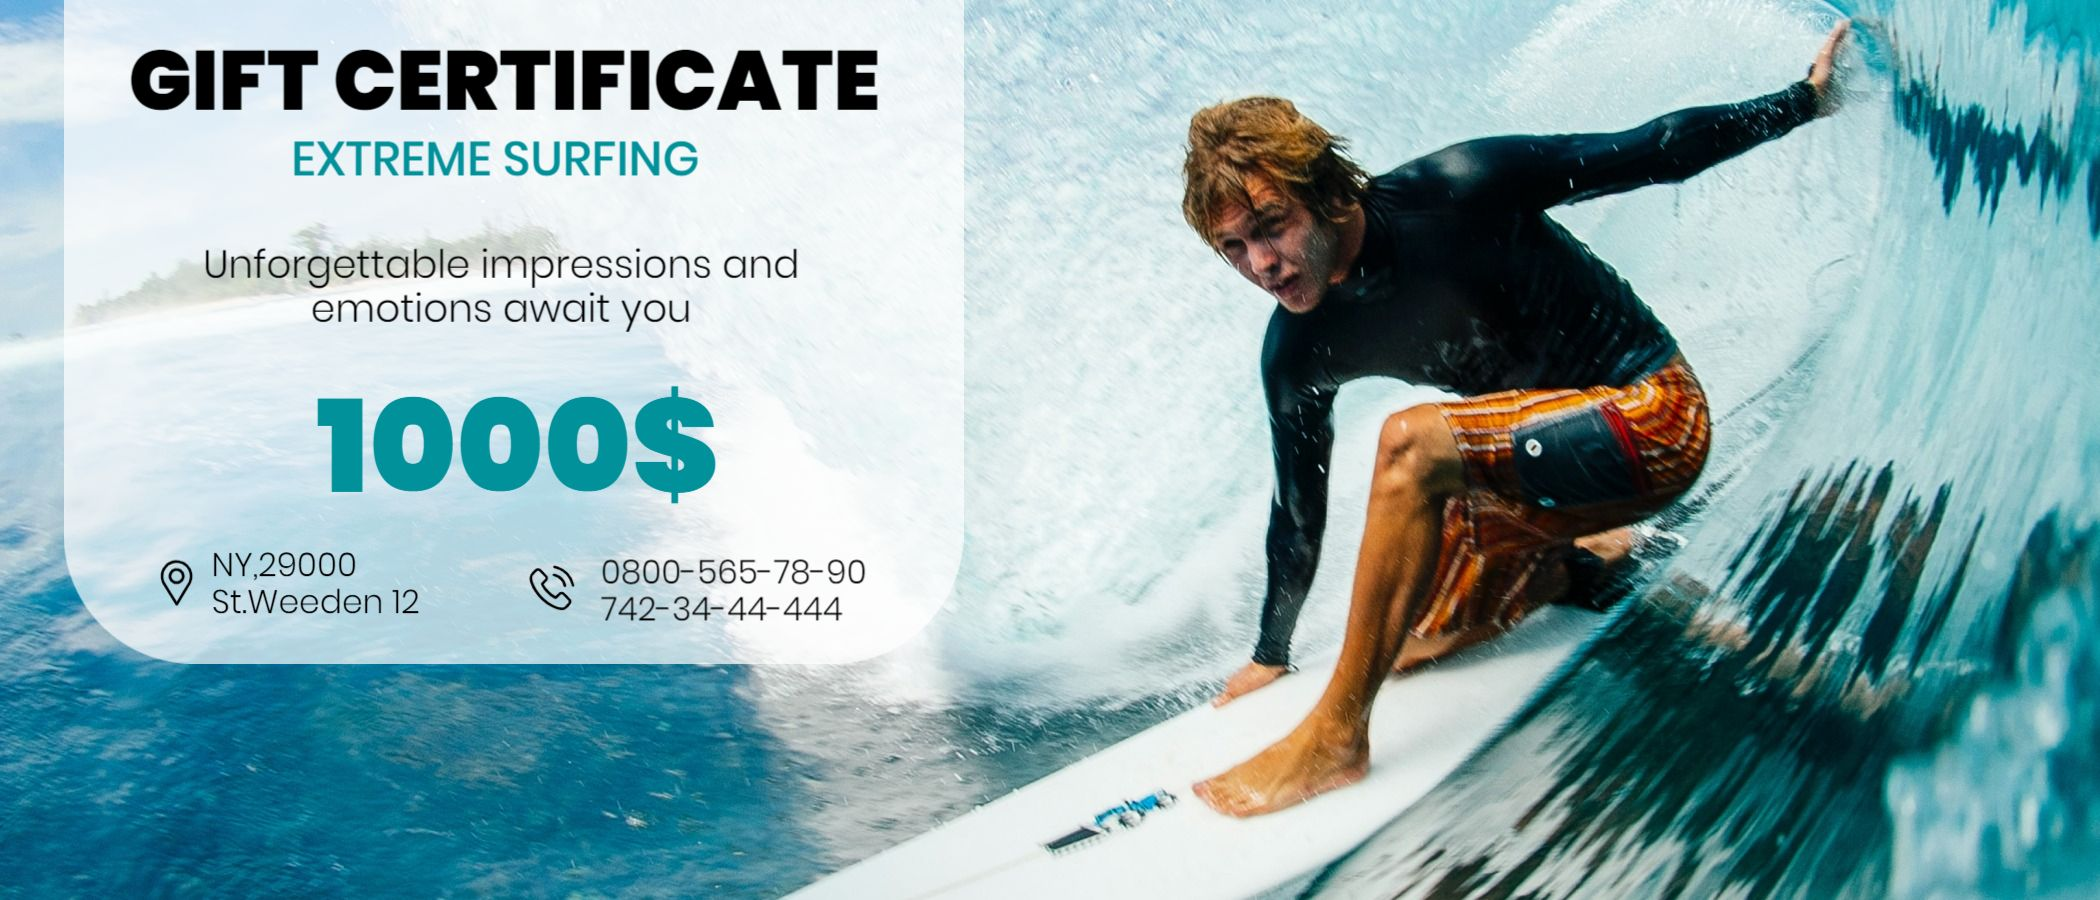 Extreme Surfing Gift Certificate Design